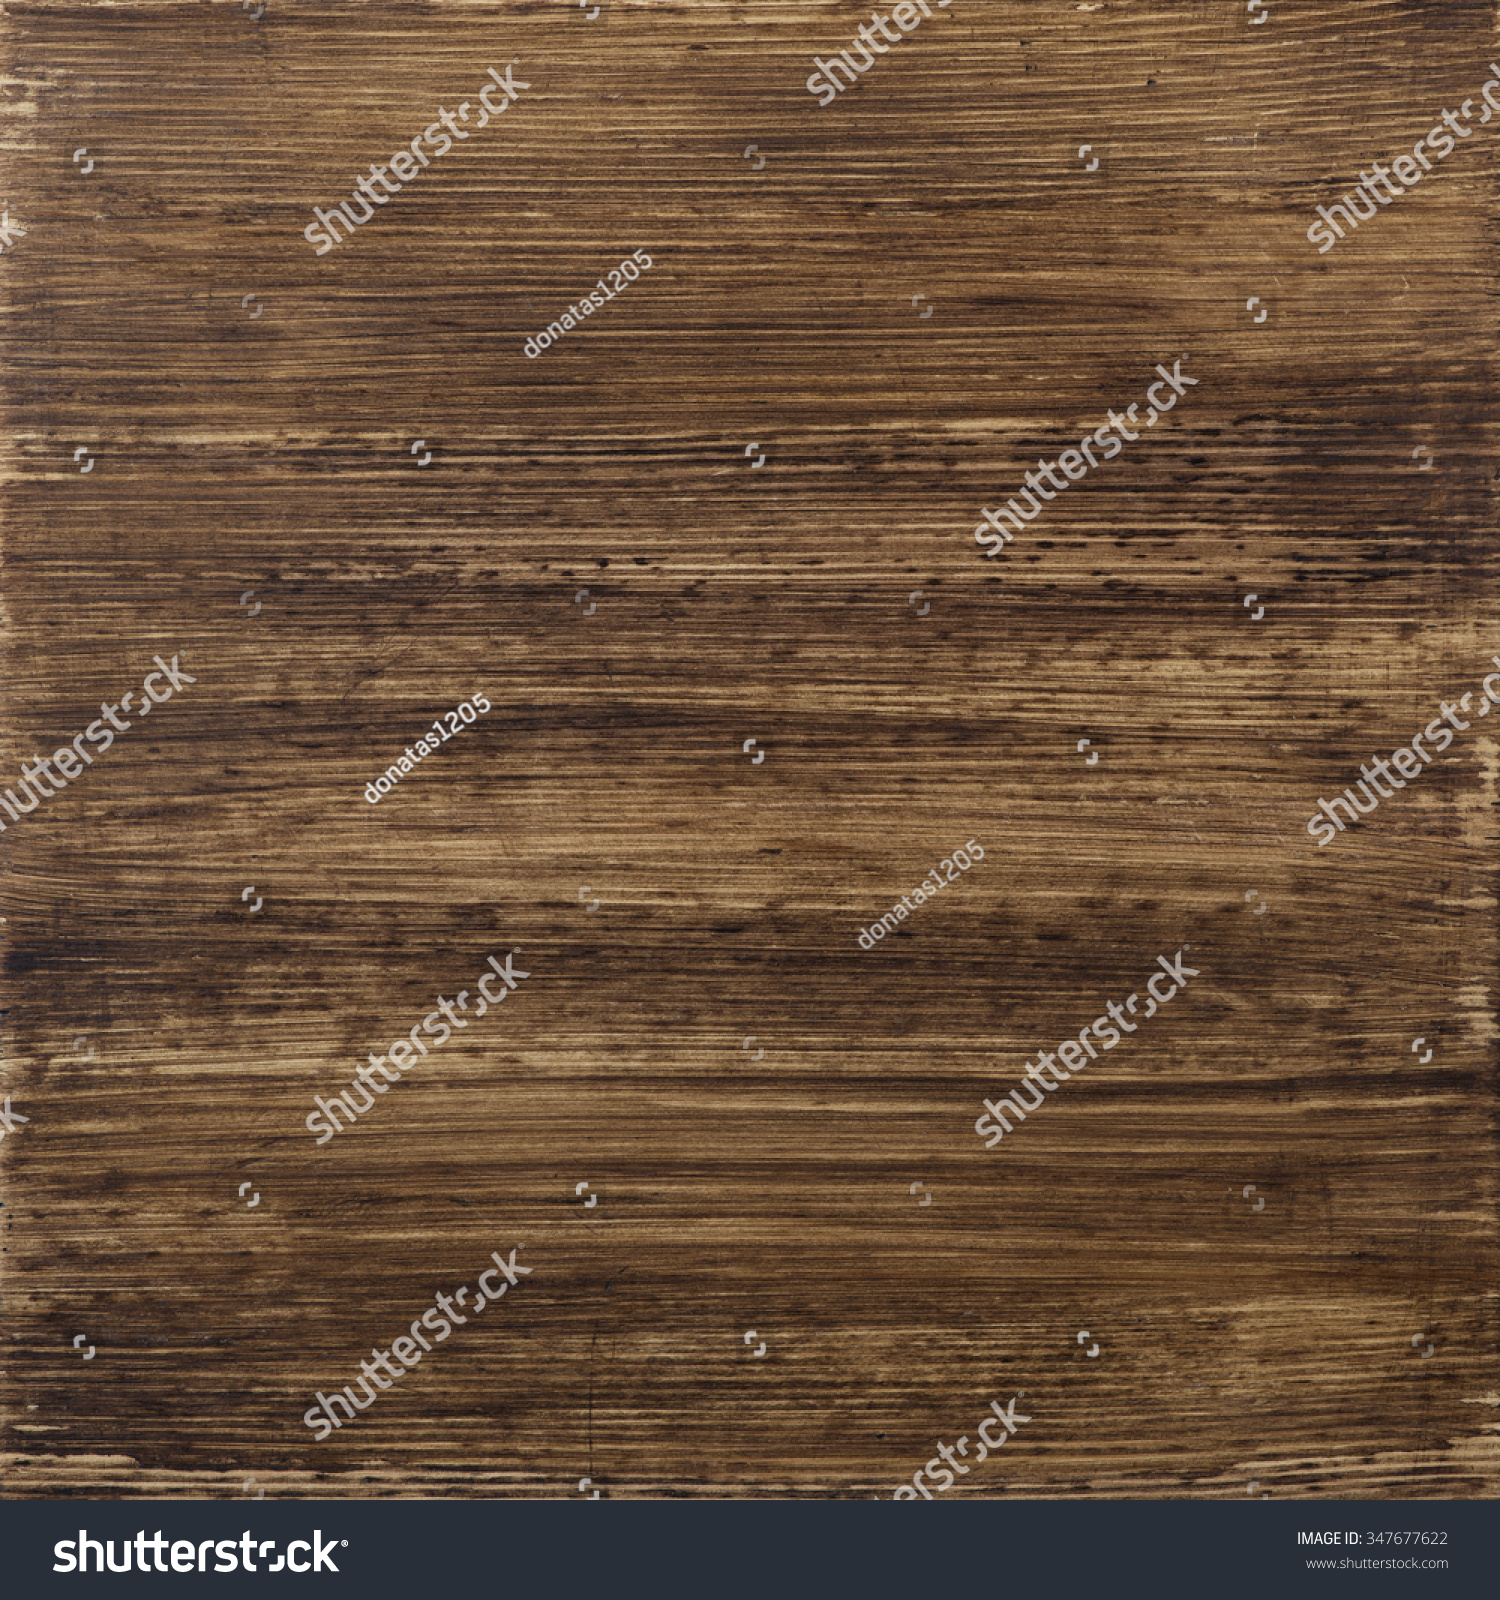 Wooden Texture Dark Brown Wood Background Stock Photo (Safe to Use ...